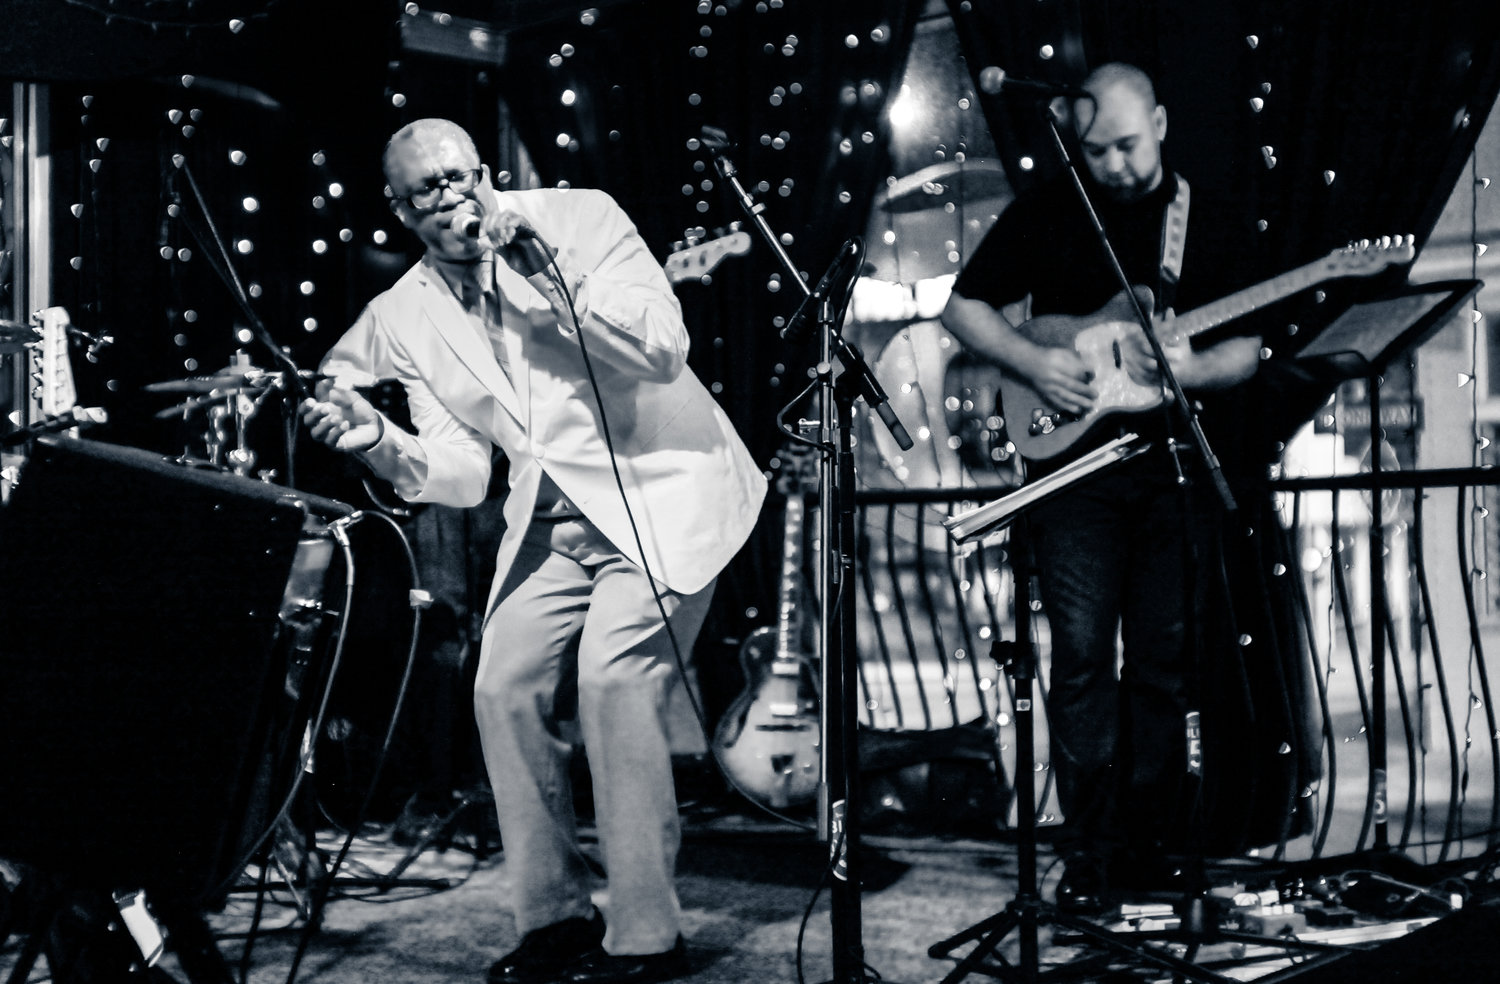 Terry Brown & Fire - At Blue 5 Restaurant